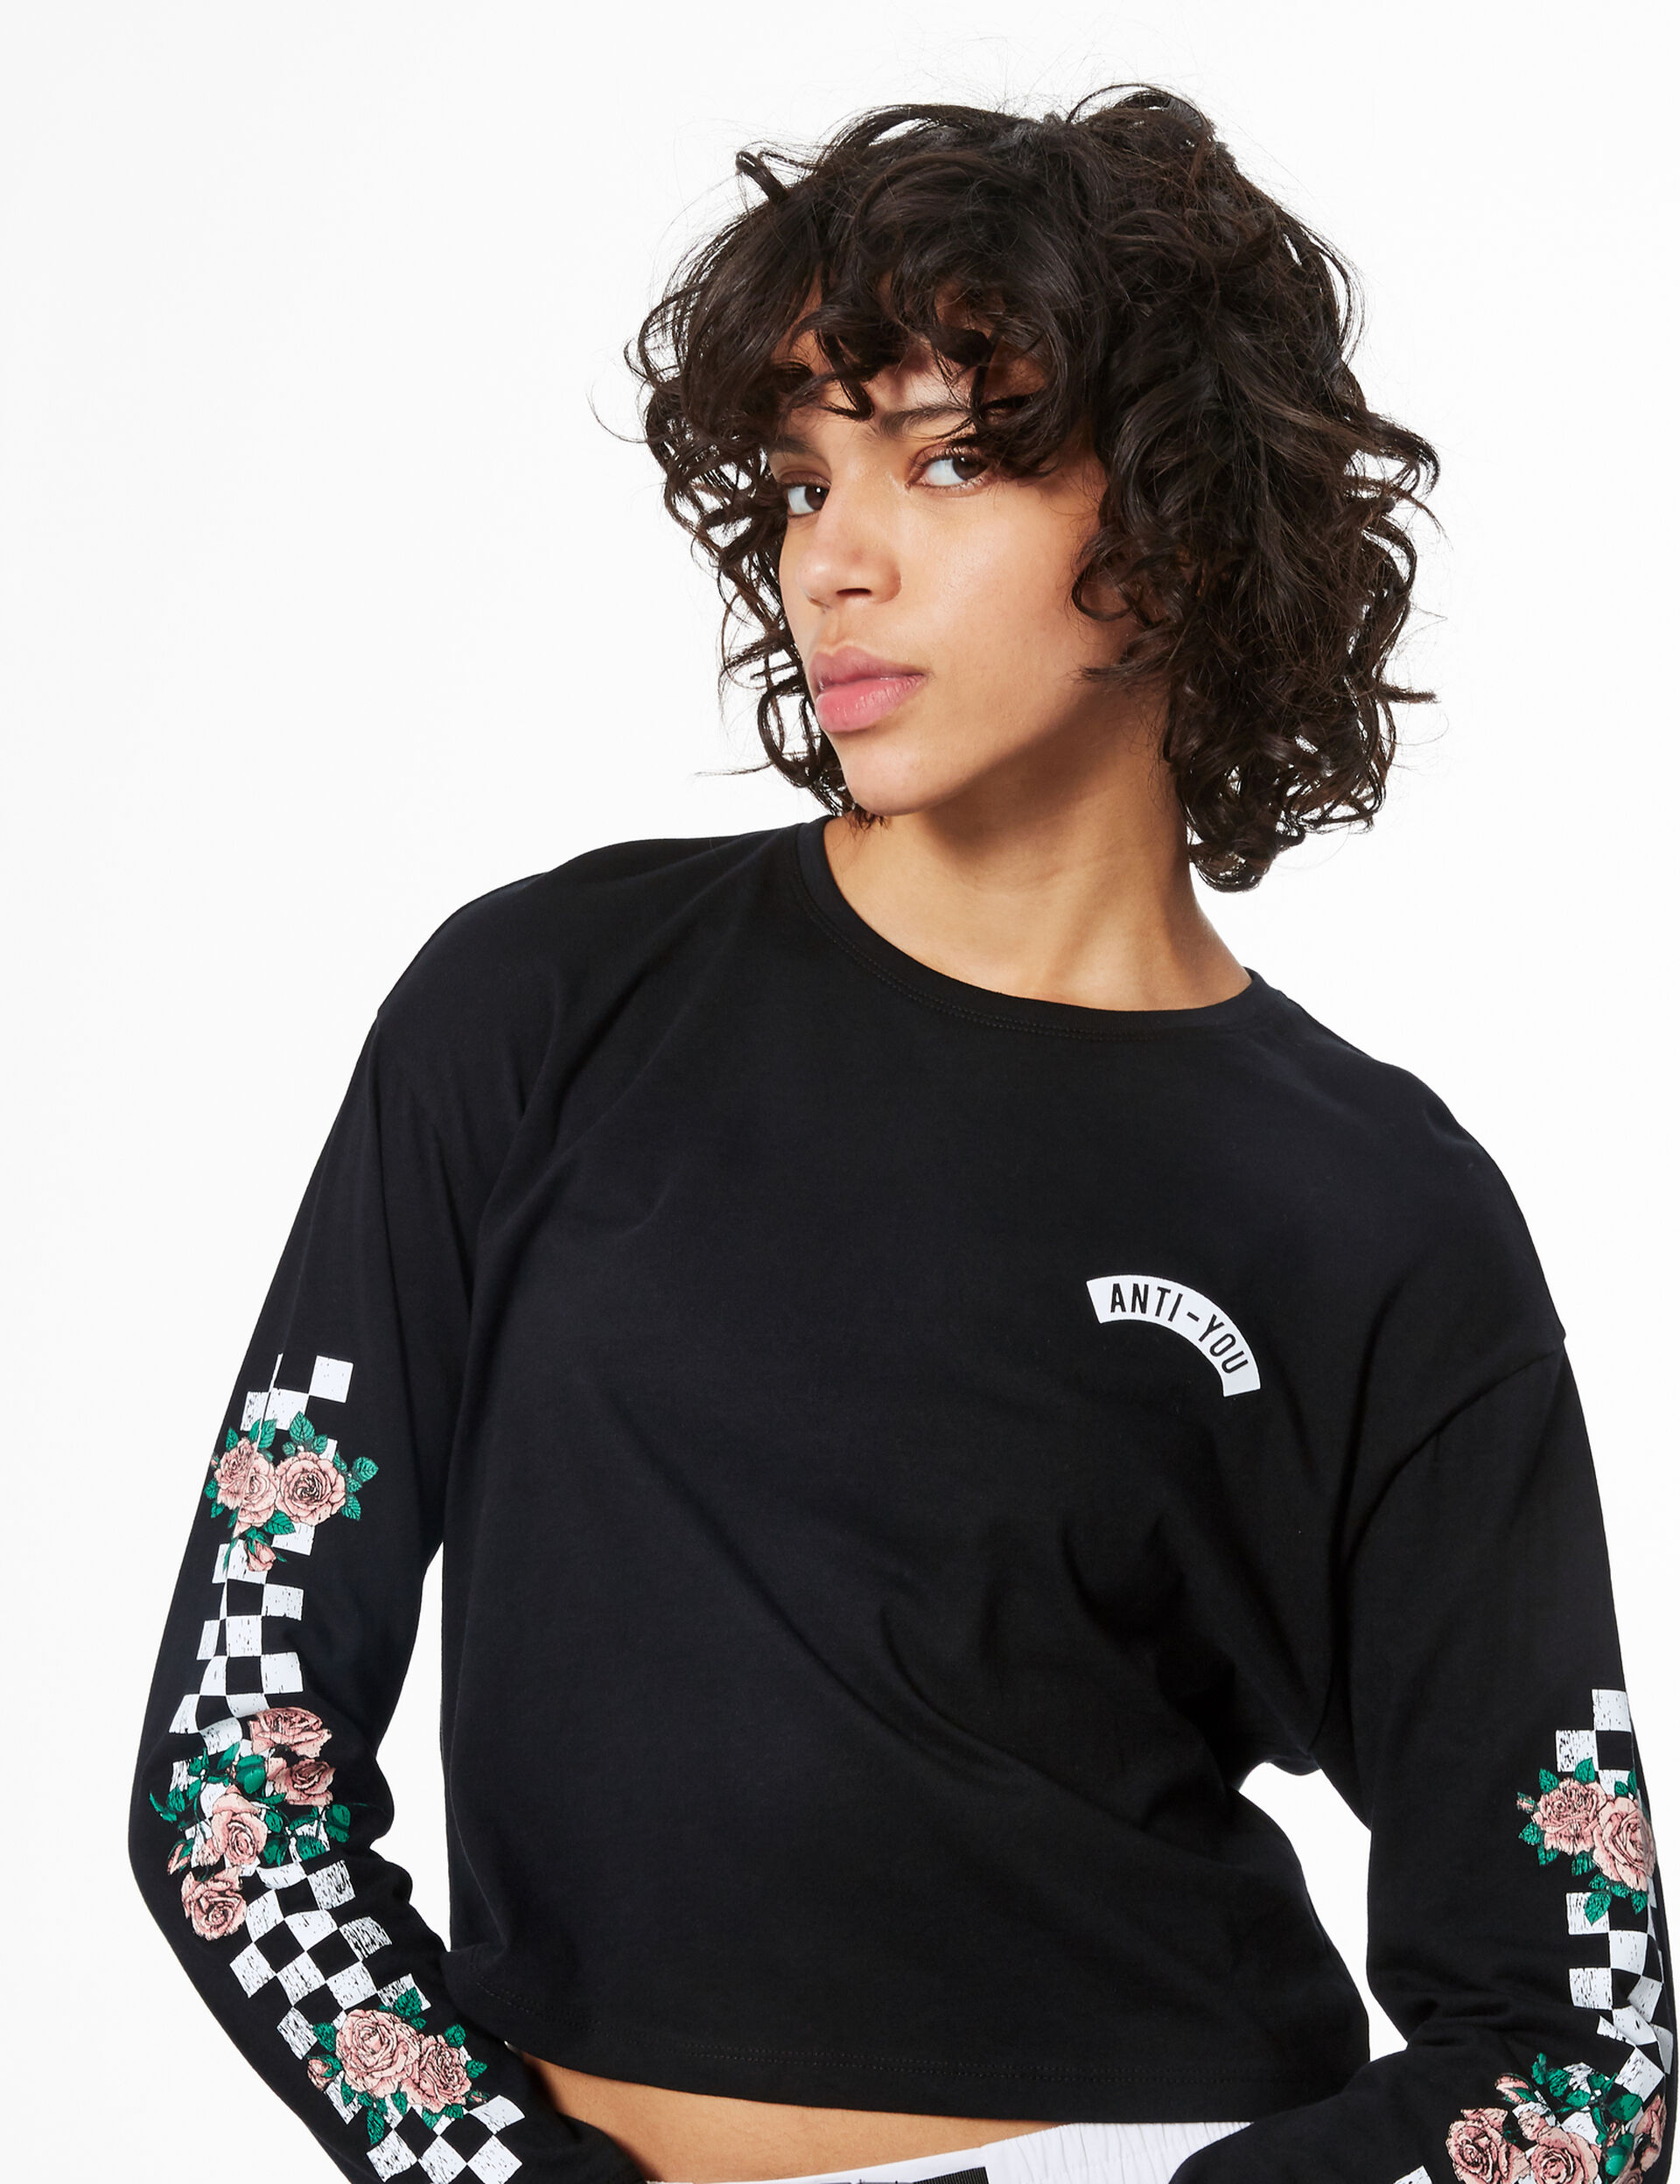 Cropped 'anti-you' T-shirt